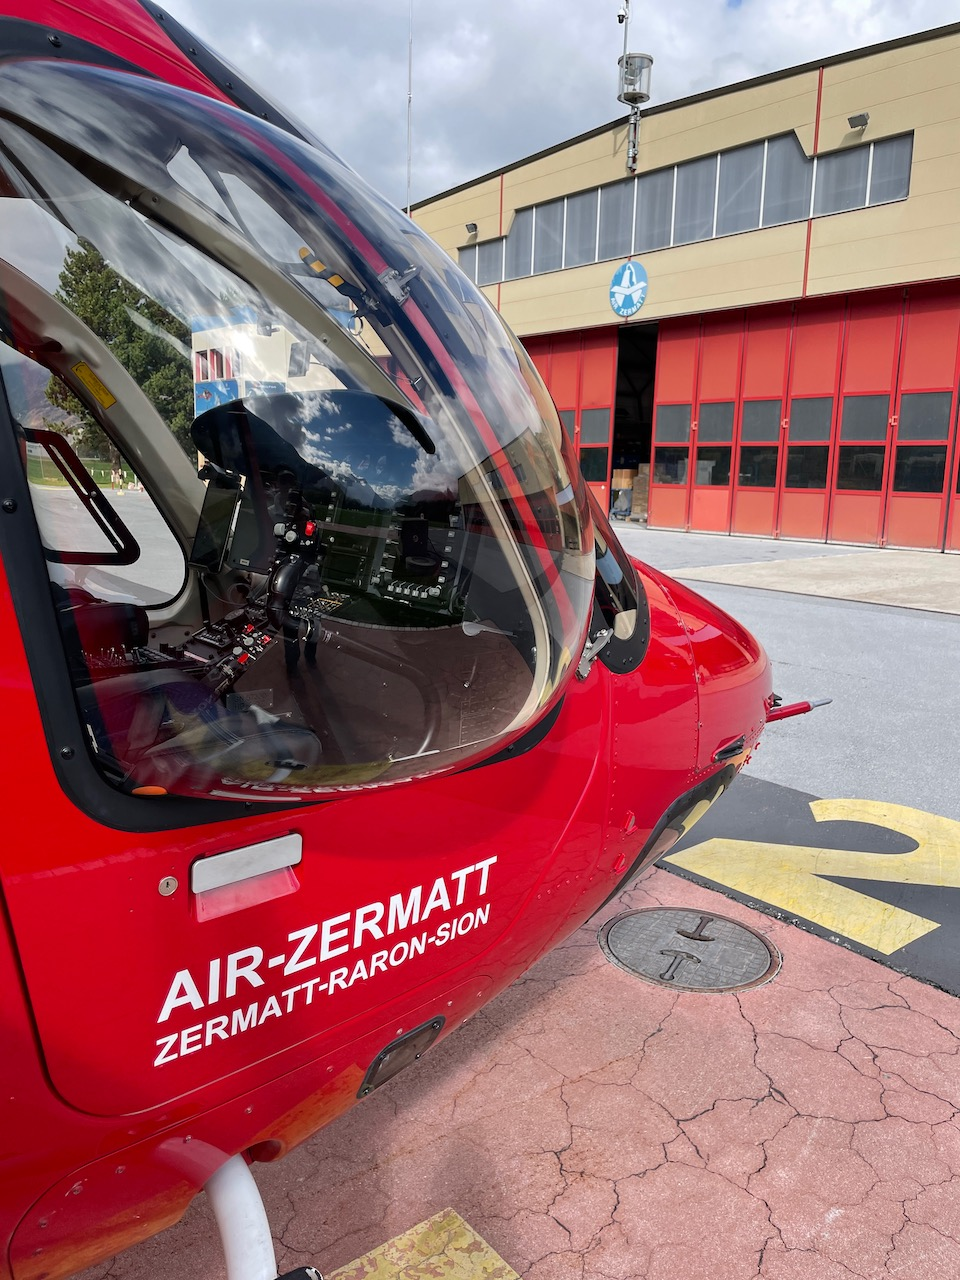 Air Zermatt offers sightseeing and charter flights for the Matterhorn and transfers to other airports and resorts